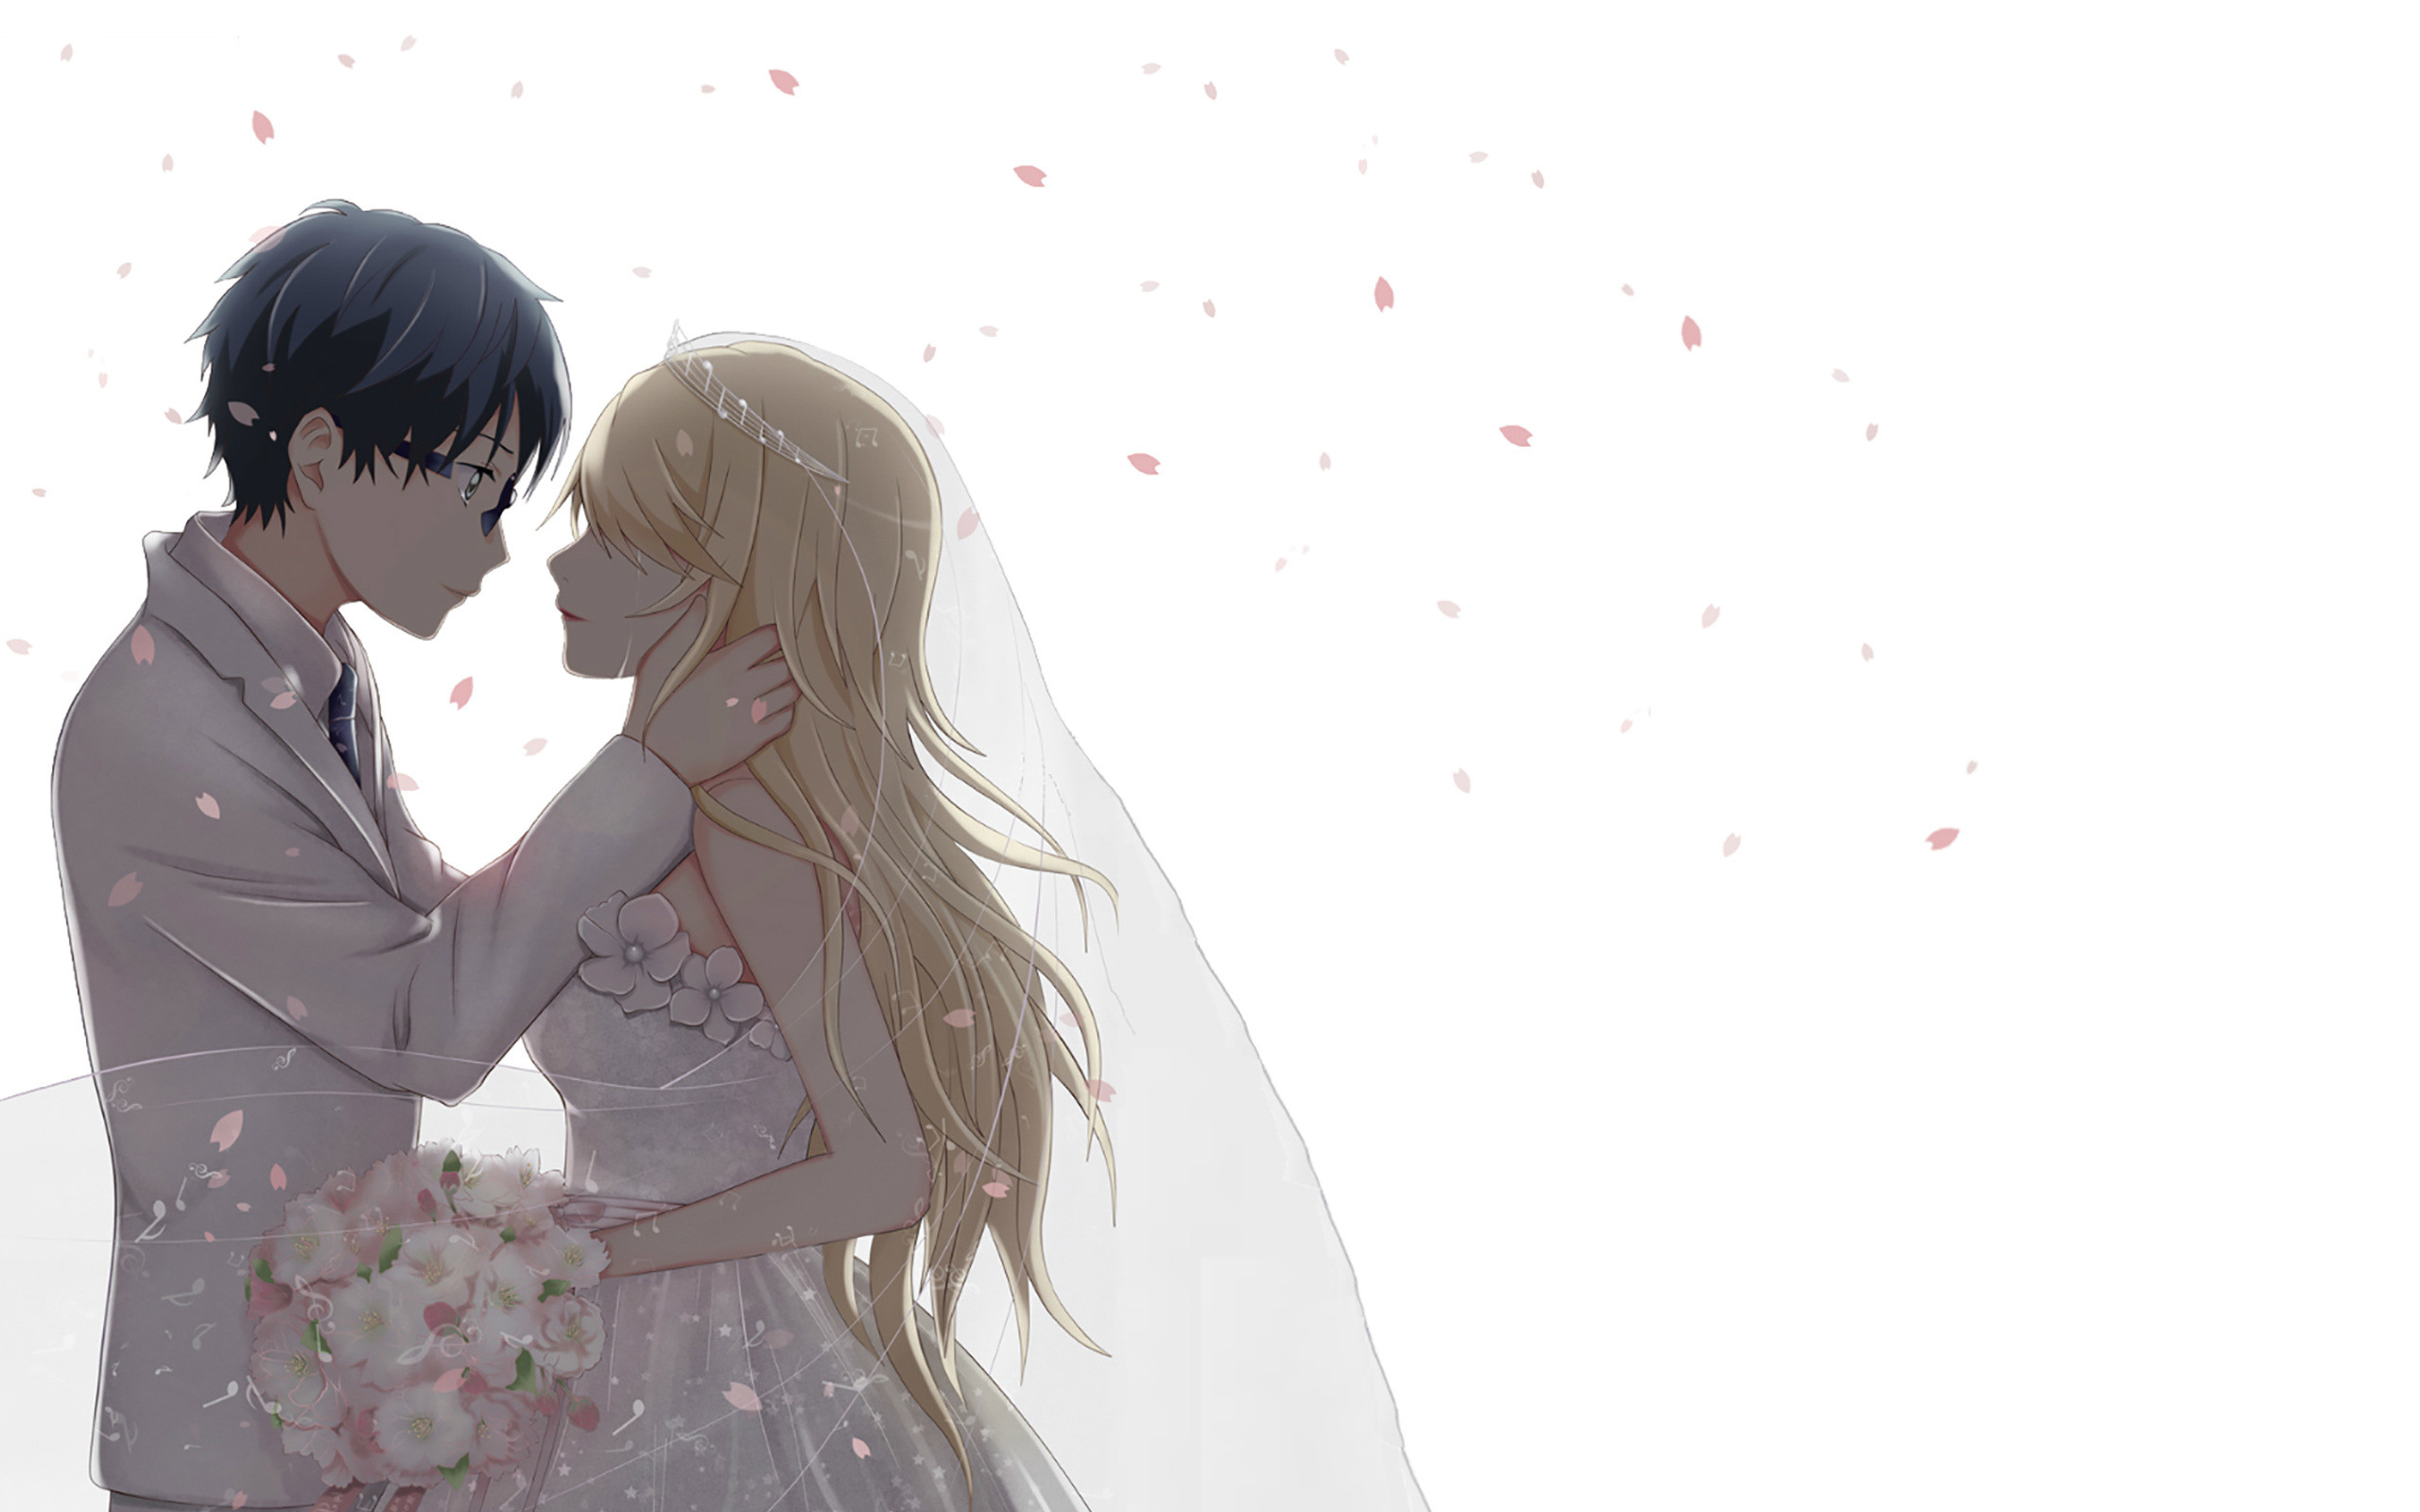 2560x1600 Anime Couple Beautiful HD Wallpaper For Laptop